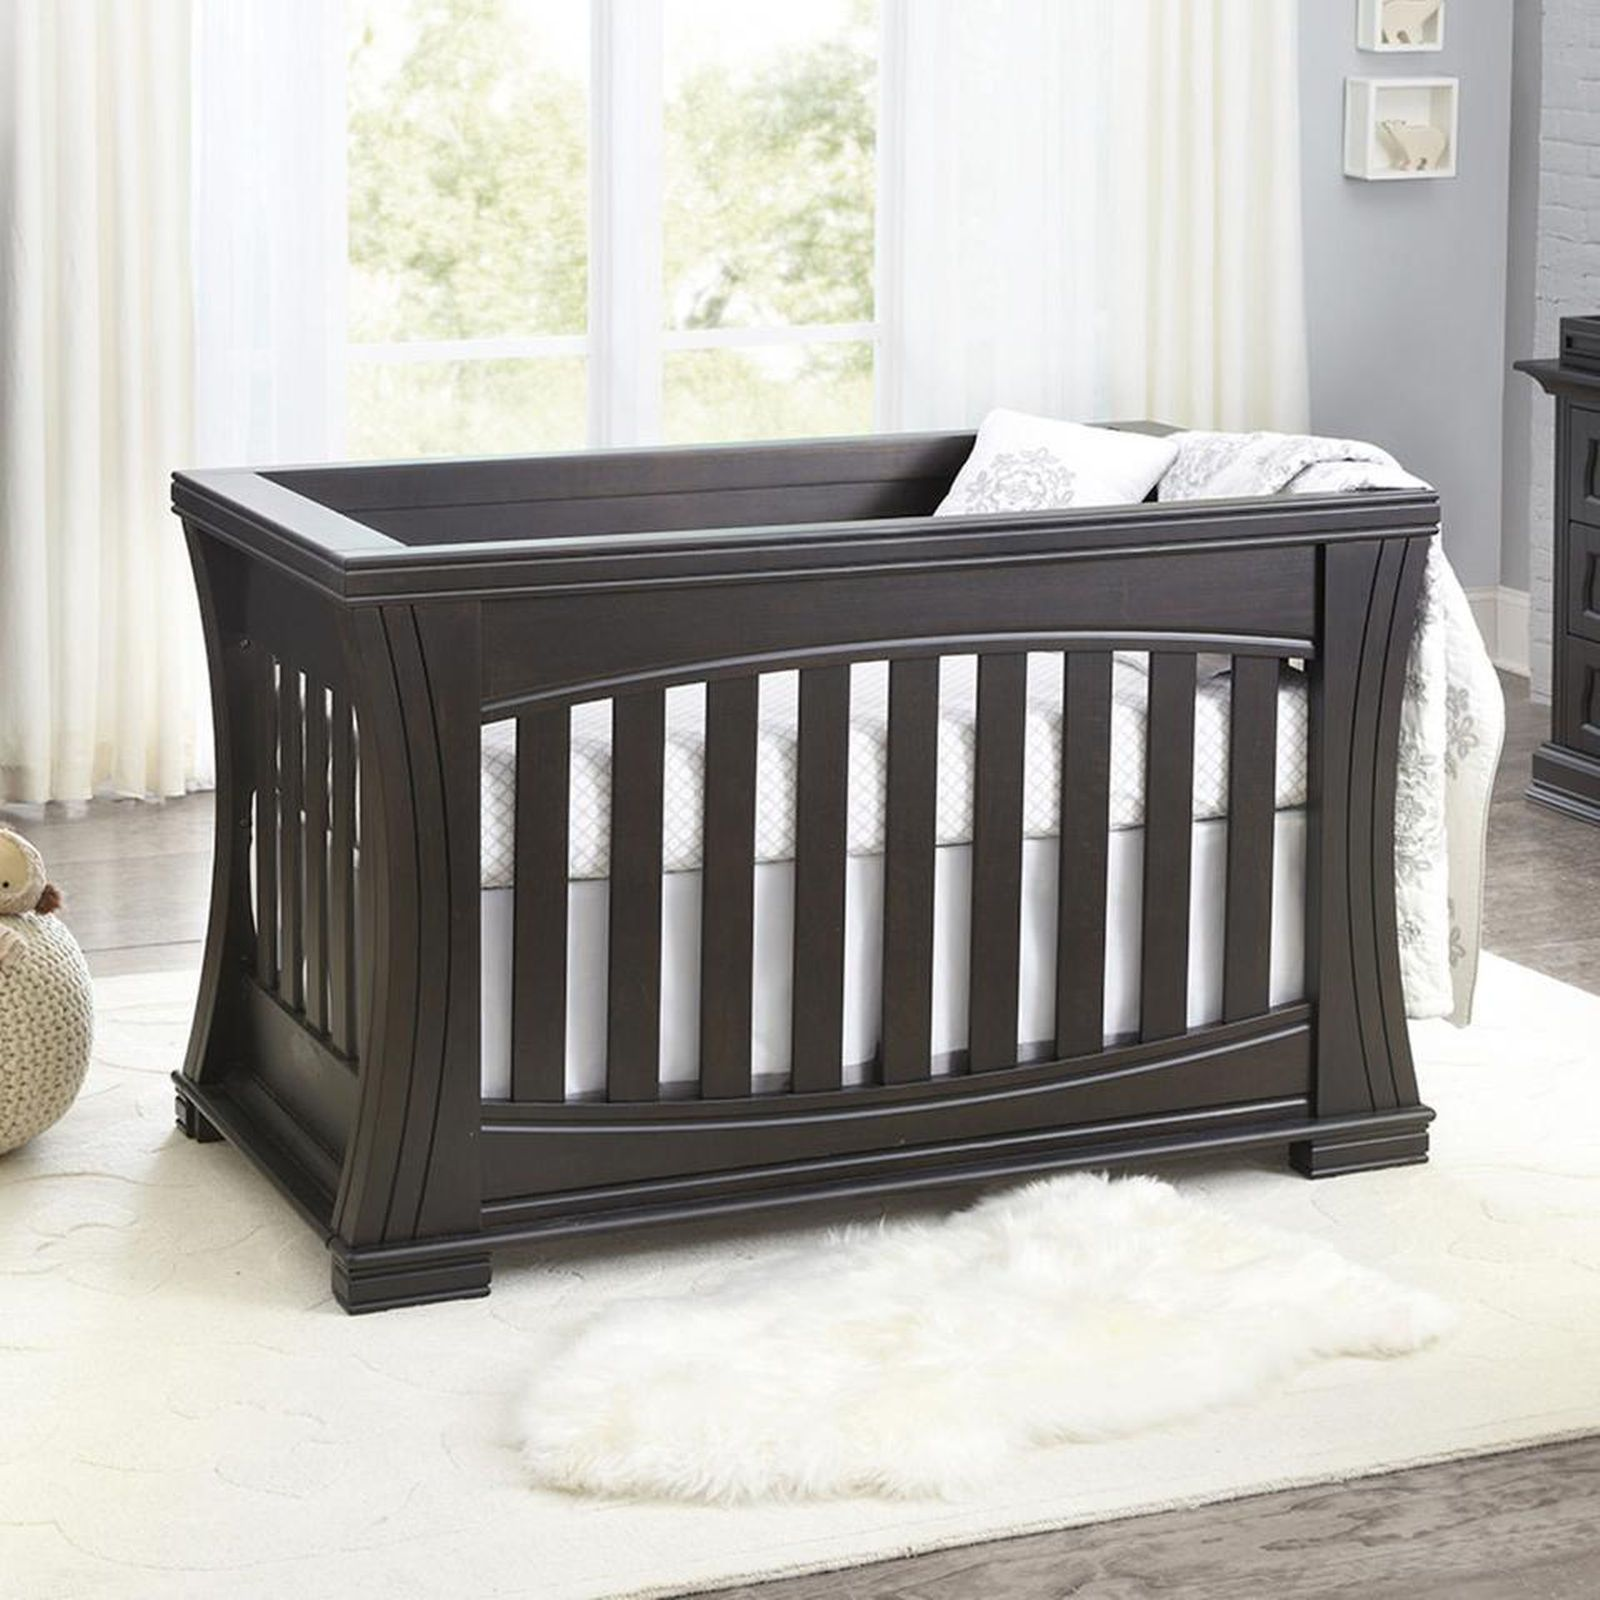 baby best day top love babydotdot all mothers davinci rated cribs that convertible bed